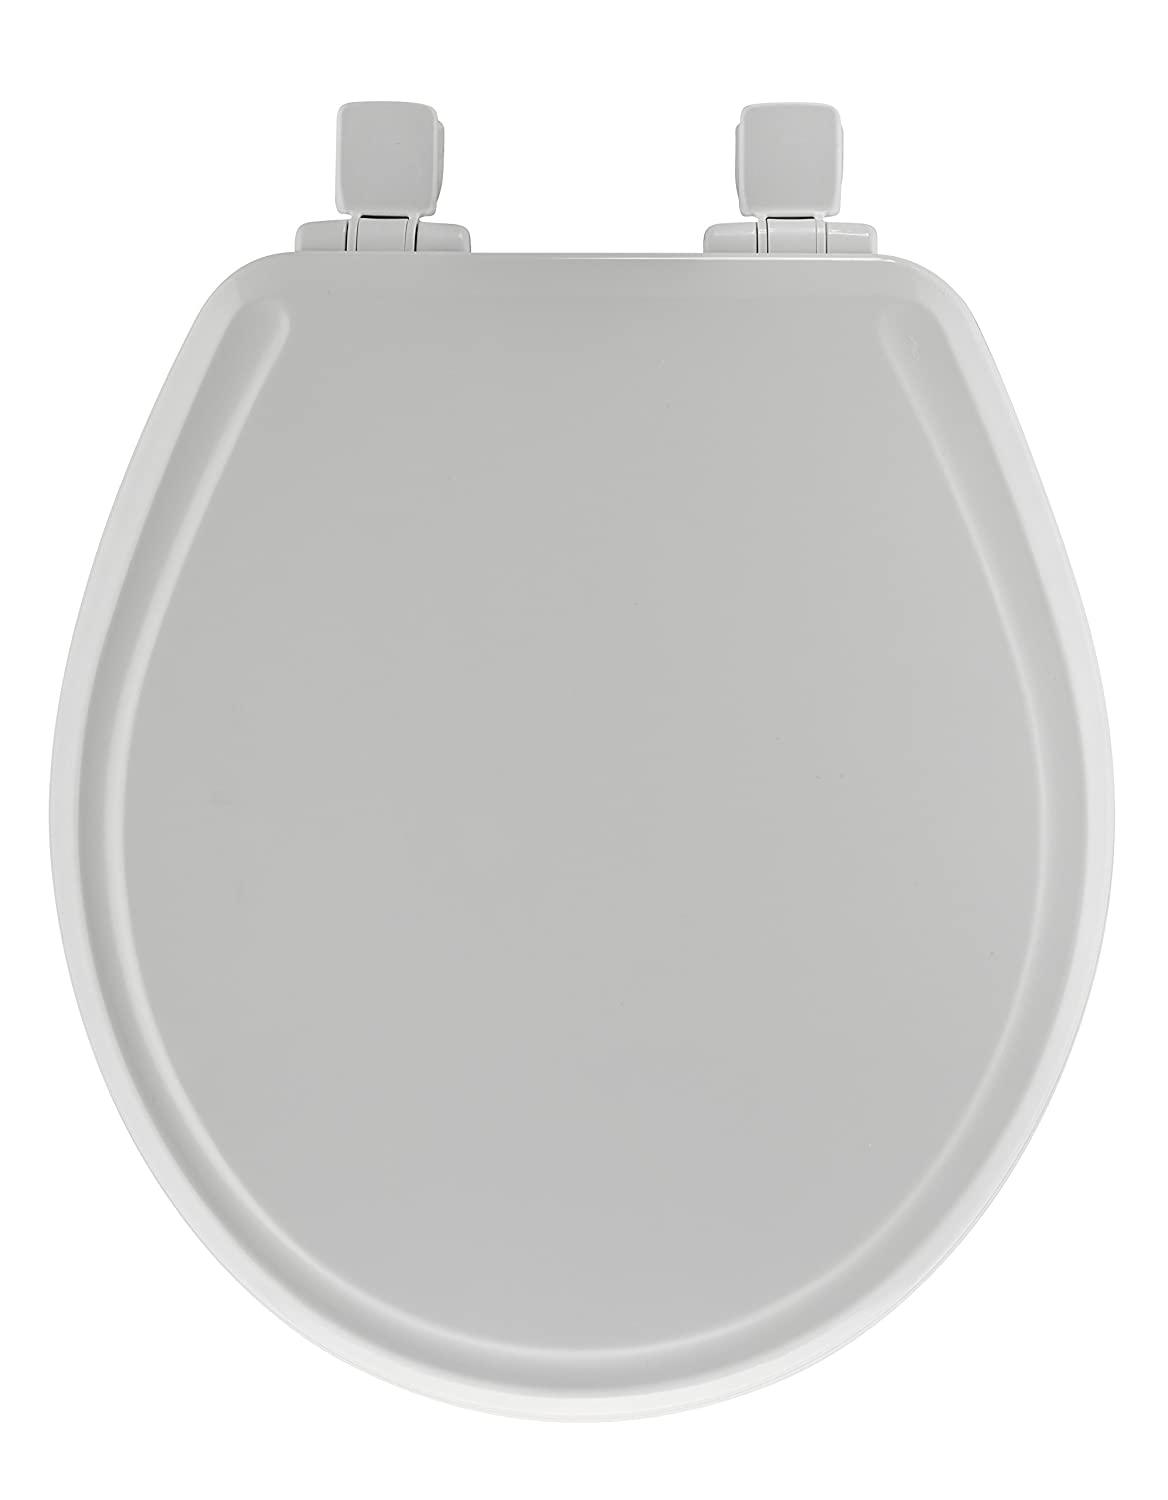 Grey Toilet Seat Soft Close Wenko Forano Thermoplastic Soft Touch